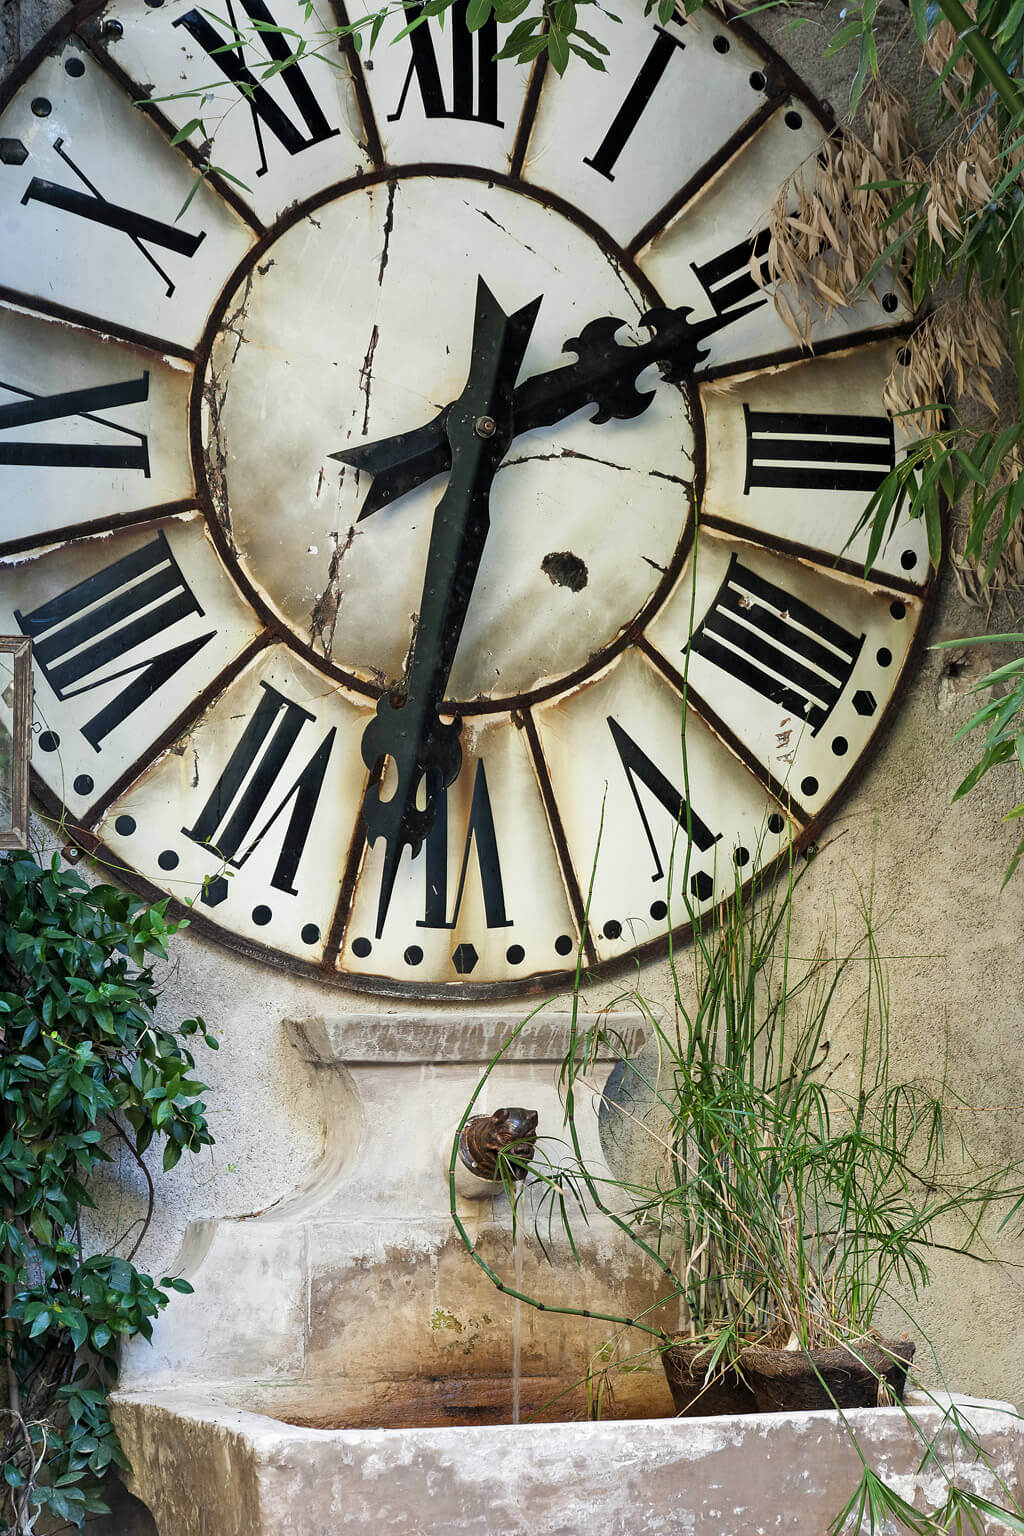 Stone fountain and huge clock with roman numerals. Beautiful French country garden inspiration from a luxurious property in the South of France. Breathtaking 19th century restored French chateau with largest private garden in Avignon. Avignon Hôtel Particulier. Photo: Haven In.